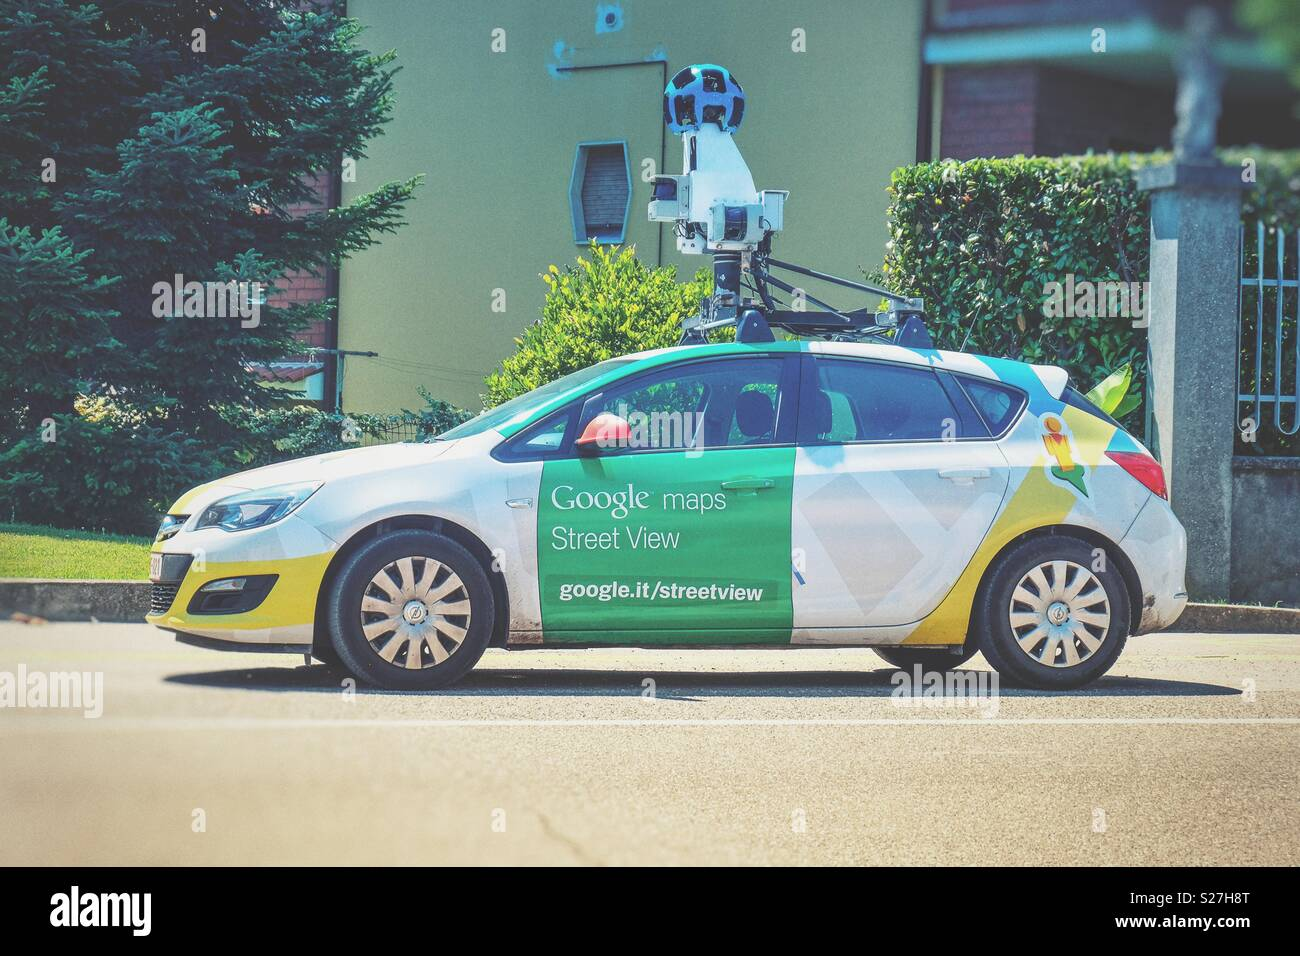 Google mapping car and camera for streetview 360 apps and maps Stock